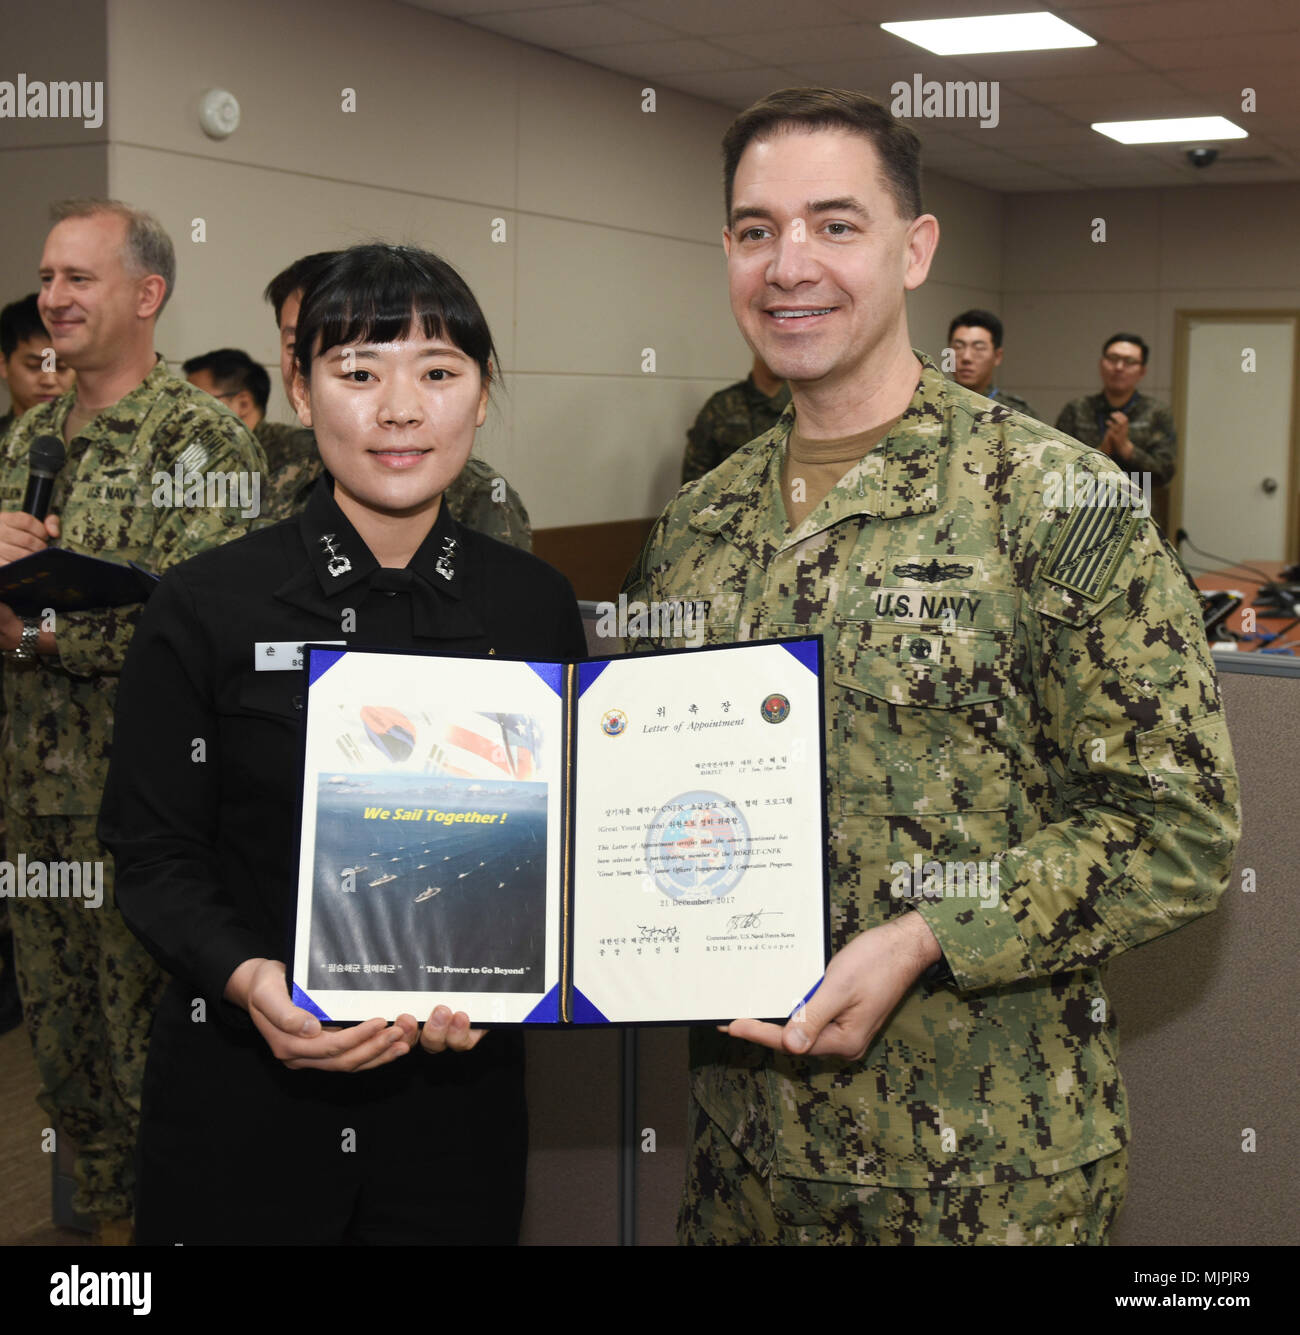 "171221-N-TB148-056 BUSAN, Republic of Korea (Dec. 21, 2017) Rear Adm. Brad Cooper, commander, U.S. Naval Forces Korea (CNFK), presents Lt. Son, Hye Rim with a letter of appointment for her selection to the ""Great Young Minds"" Junior Officers' Engagement and Cooperation Program. The ""Great Young Minds"" initiative brings together hand-selected, young officers from the ROK and U.S. navies and challenges them to develop innovative solutions to further enhance the ROK -U.S. alliance of the future. (U.S. Navy photo by Mass Communication Specialist Seaman William Carlisle) Stock Photo"